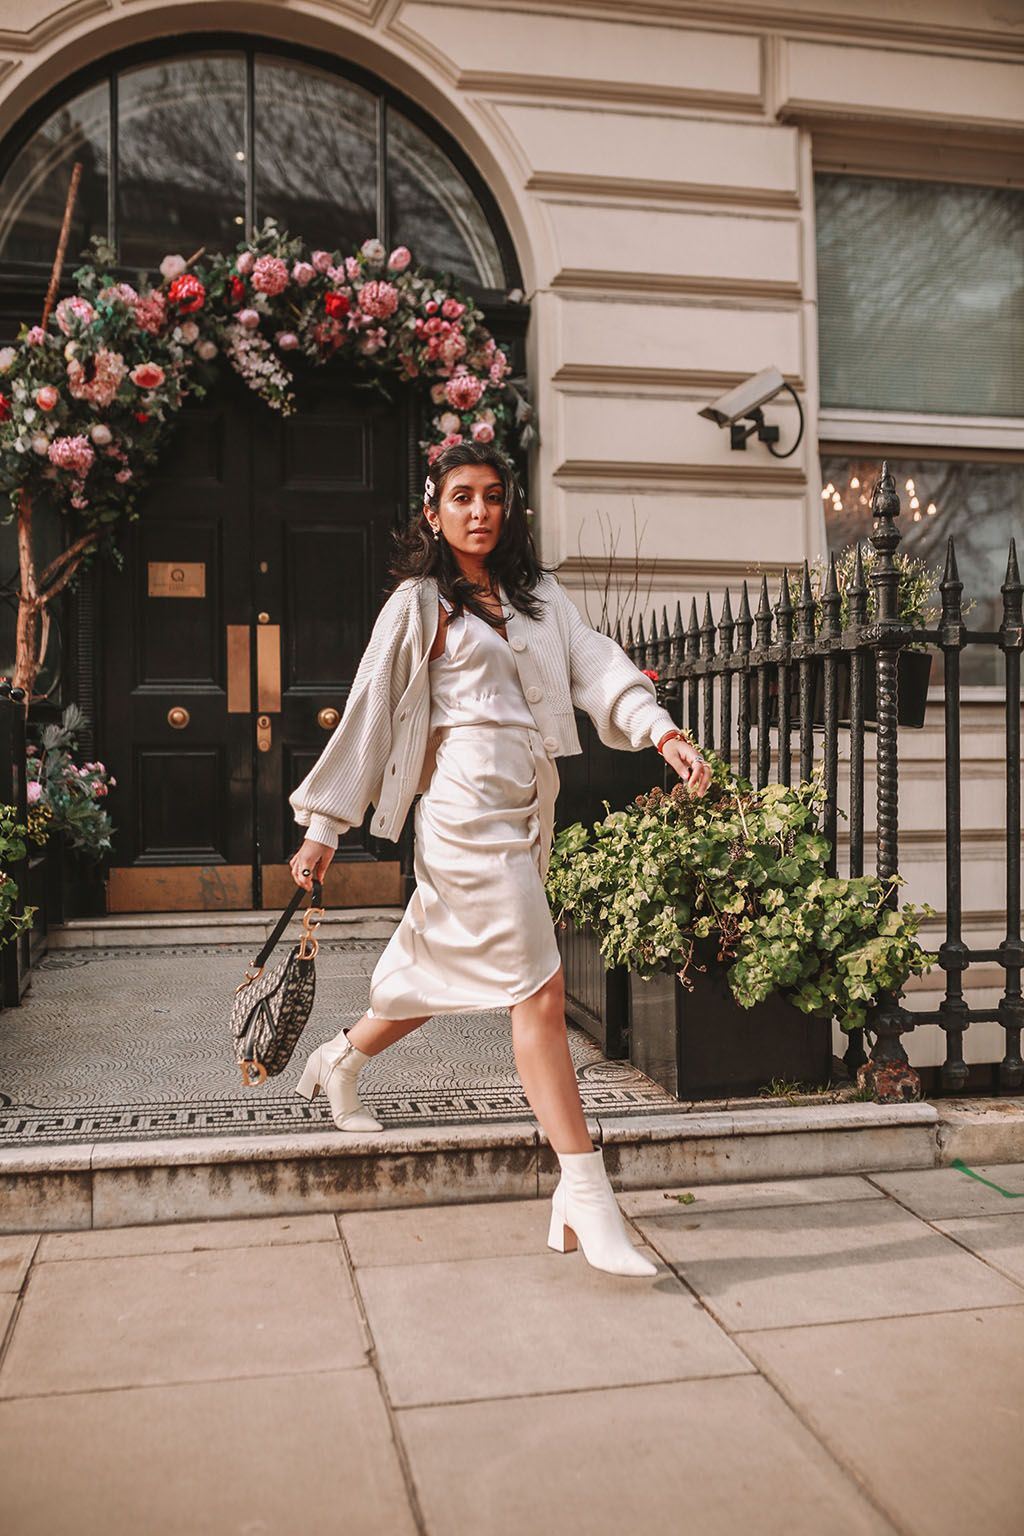 67848fab8 Luxury fashion blogger Shloka Narang of The Silk Sneaker shares how to  create the perfect spring outfit to transition your wardrobe this March  featuring a ...